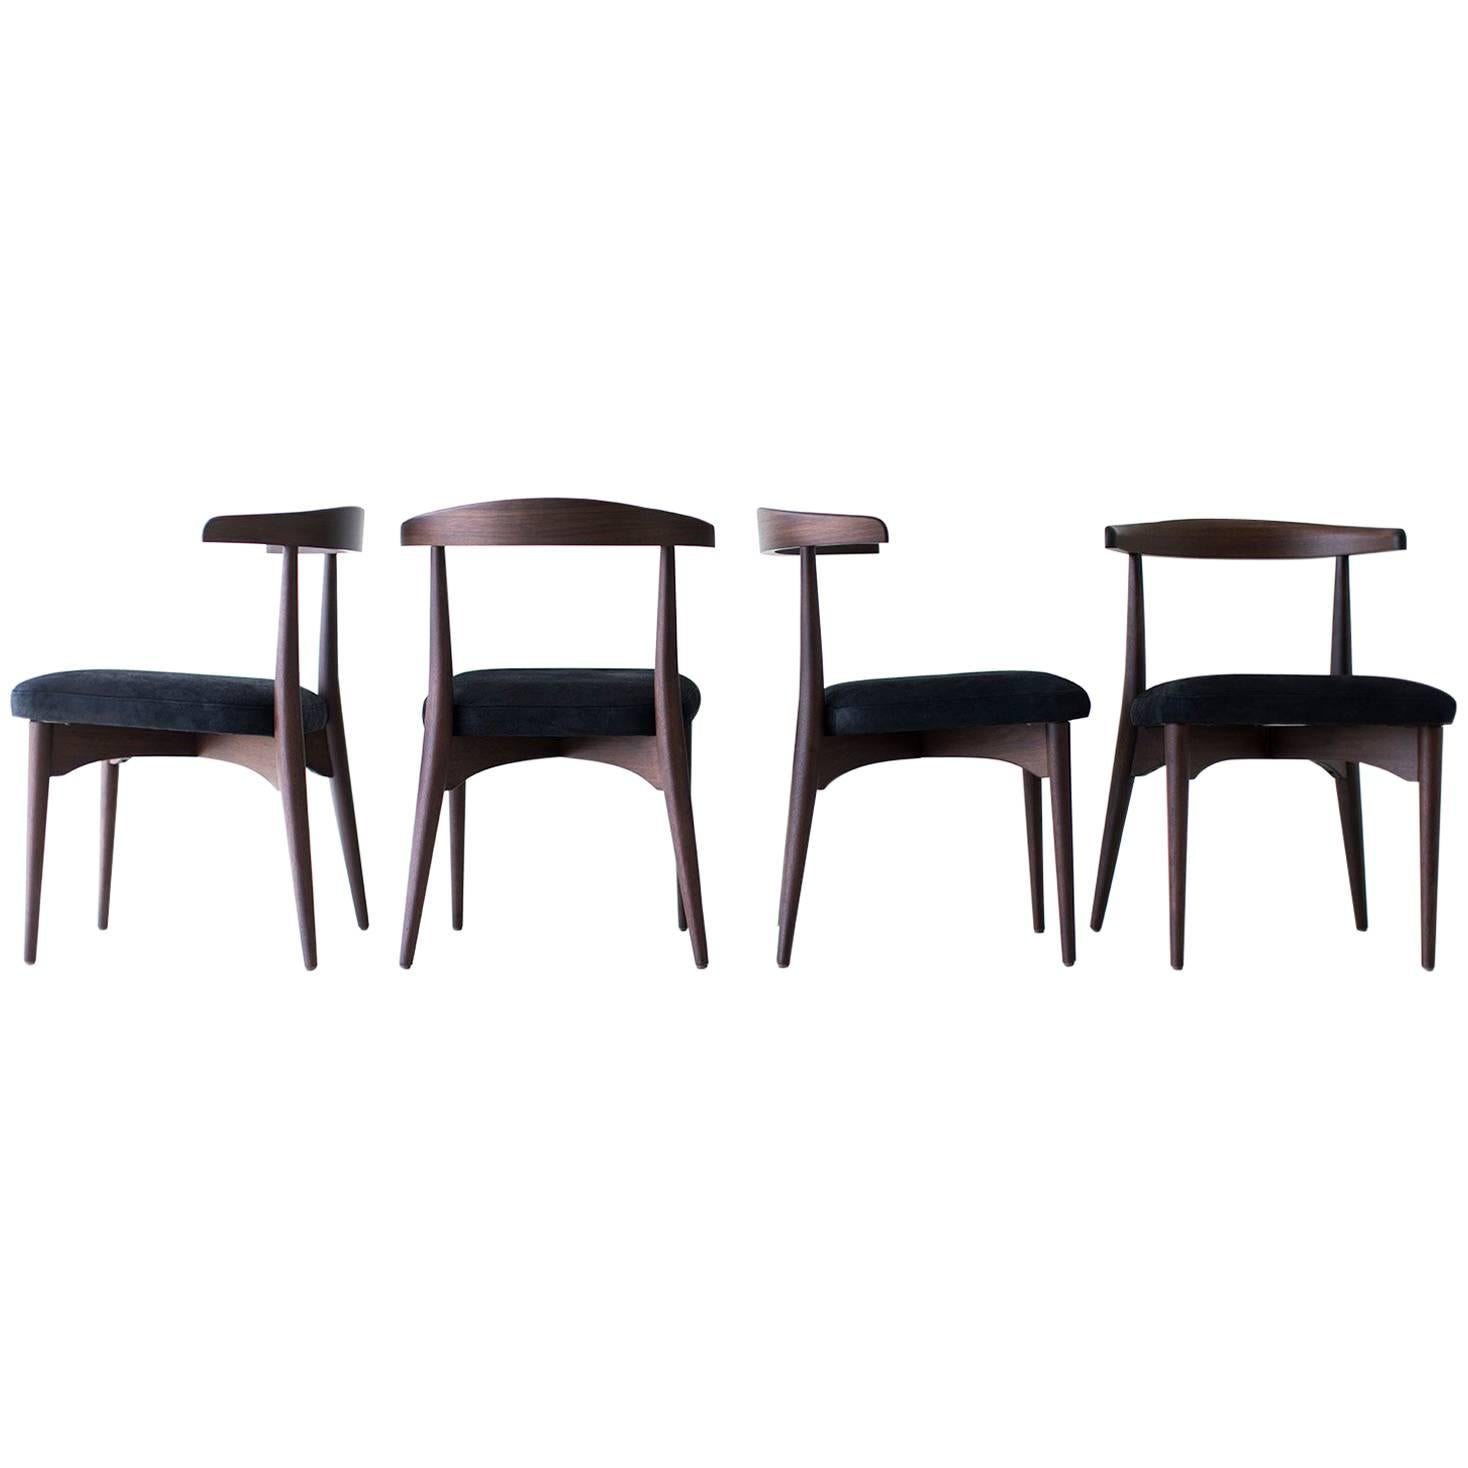 Lawrence Peabody Dining Side Chair P-1709 Craft Associates Furniture